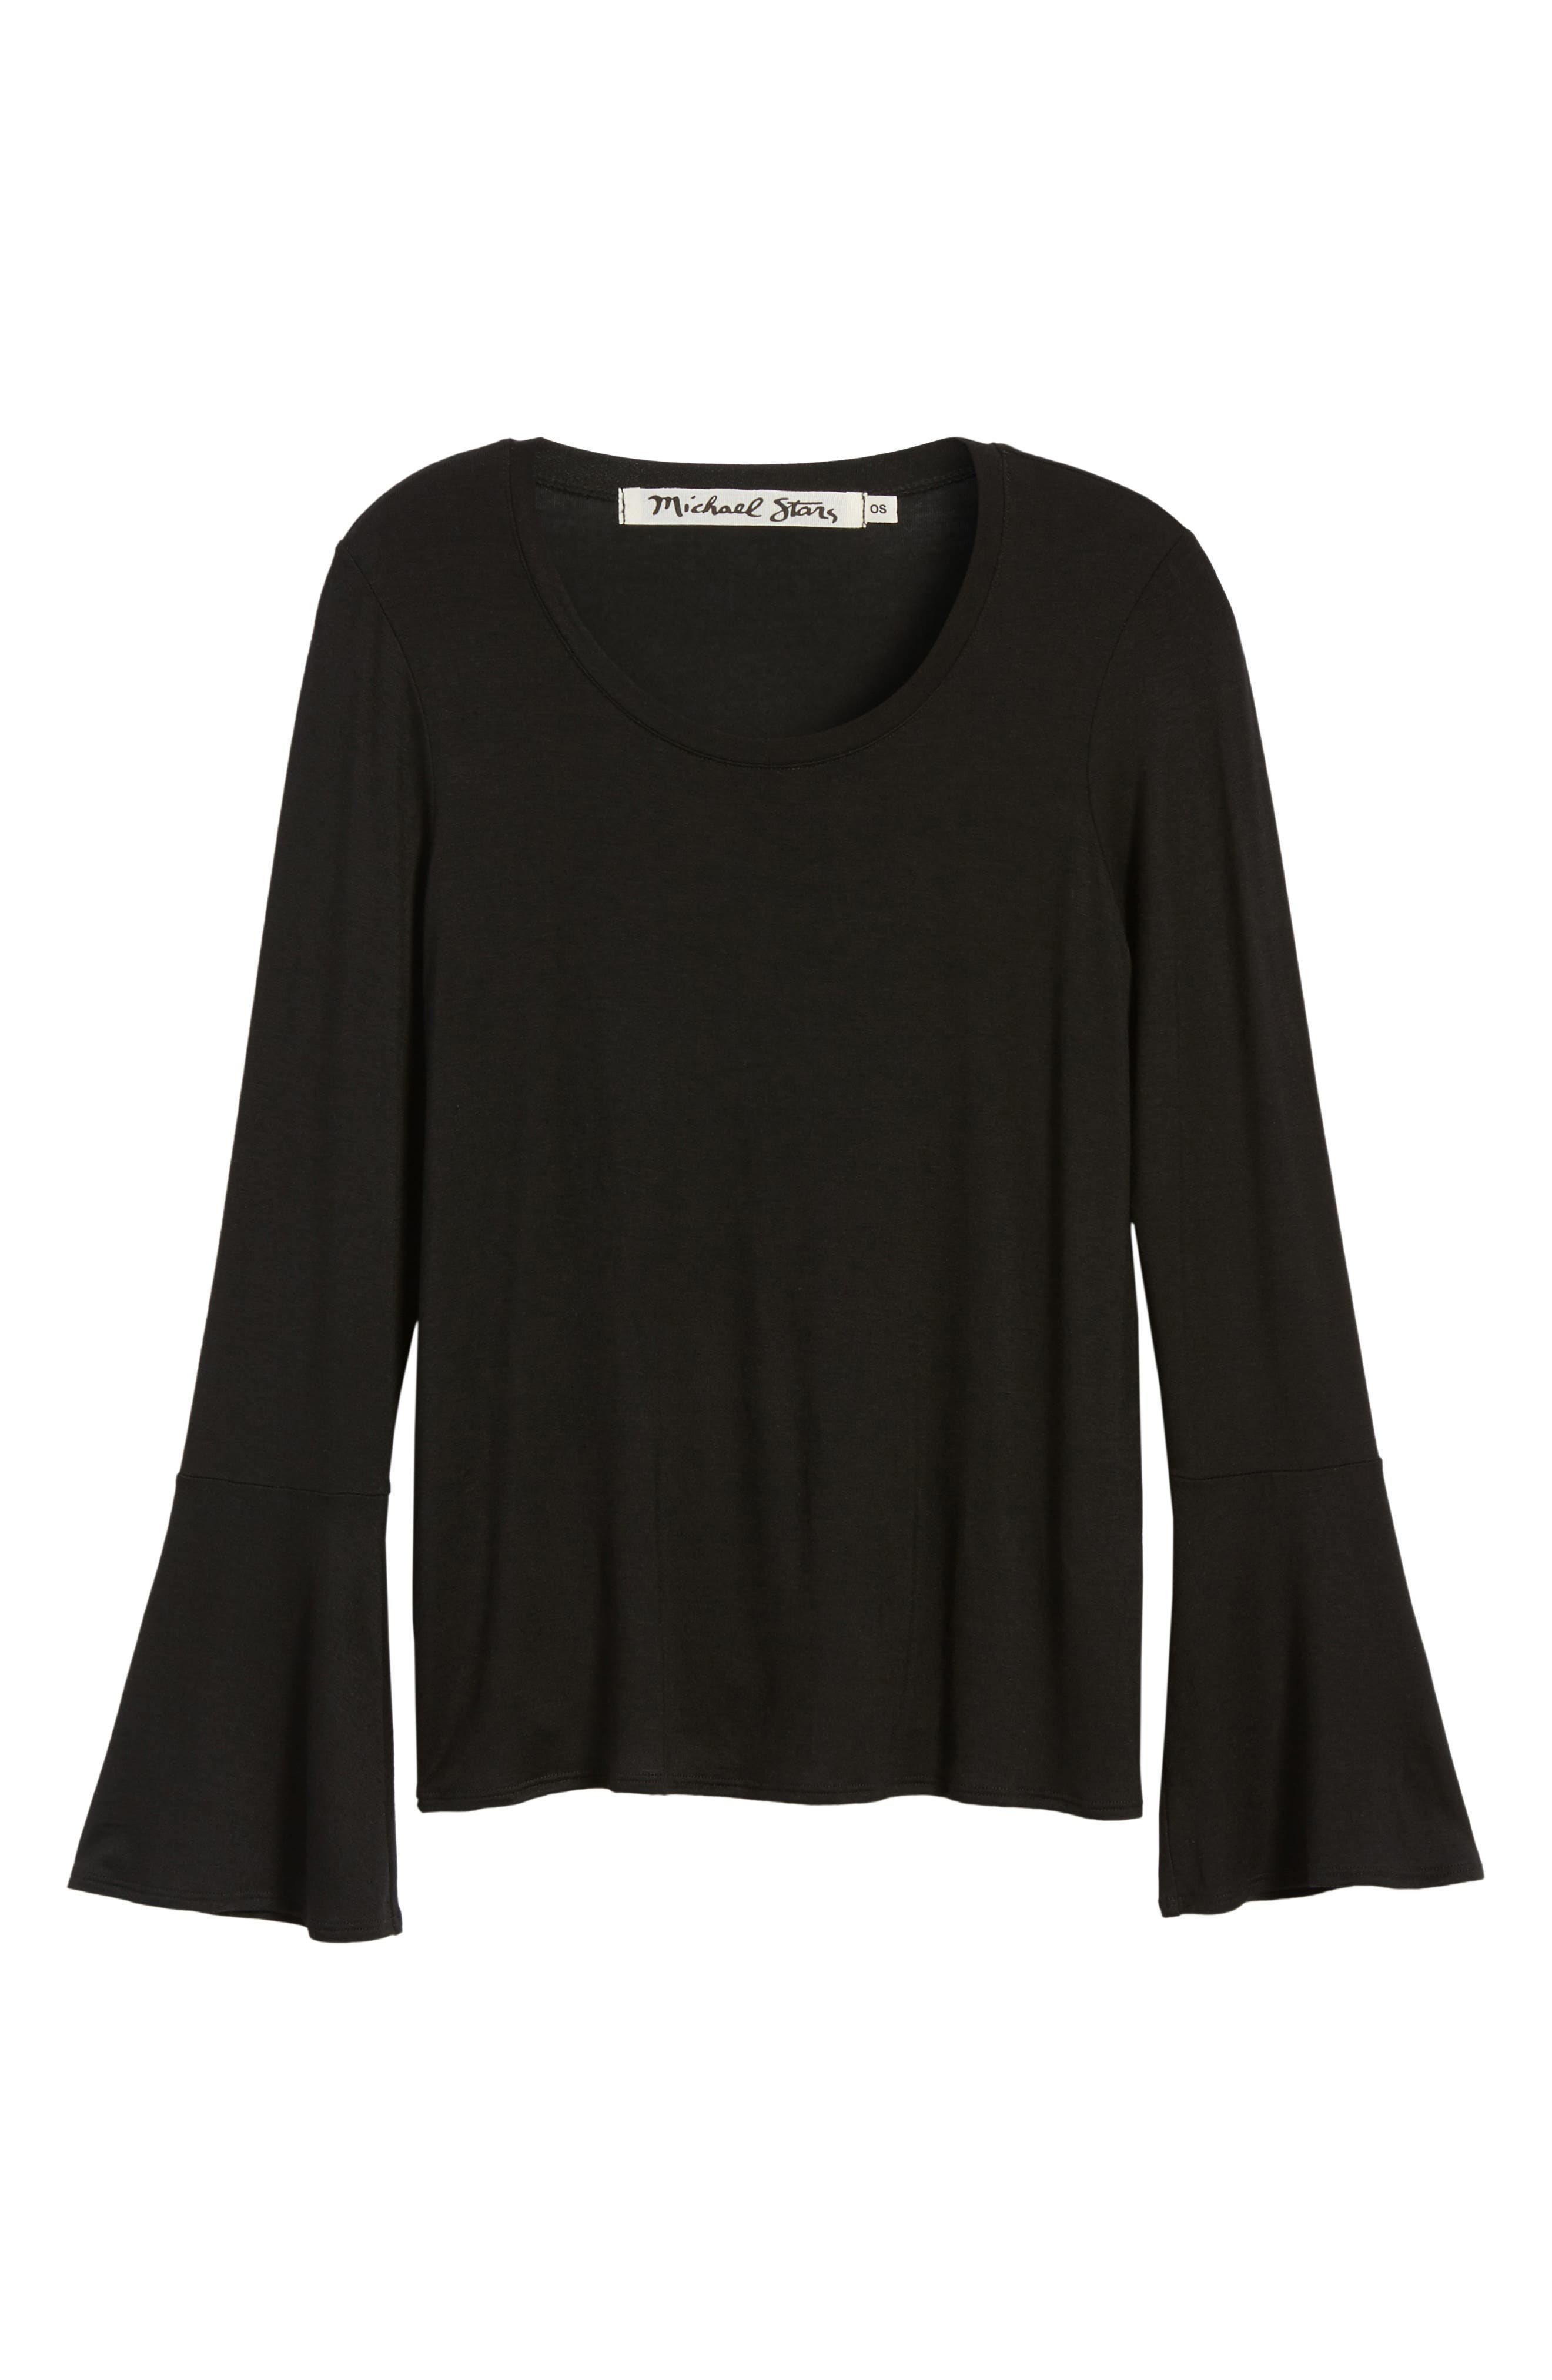 Bell Sleeve Tee,                             Alternate thumbnail 6, color,                             001